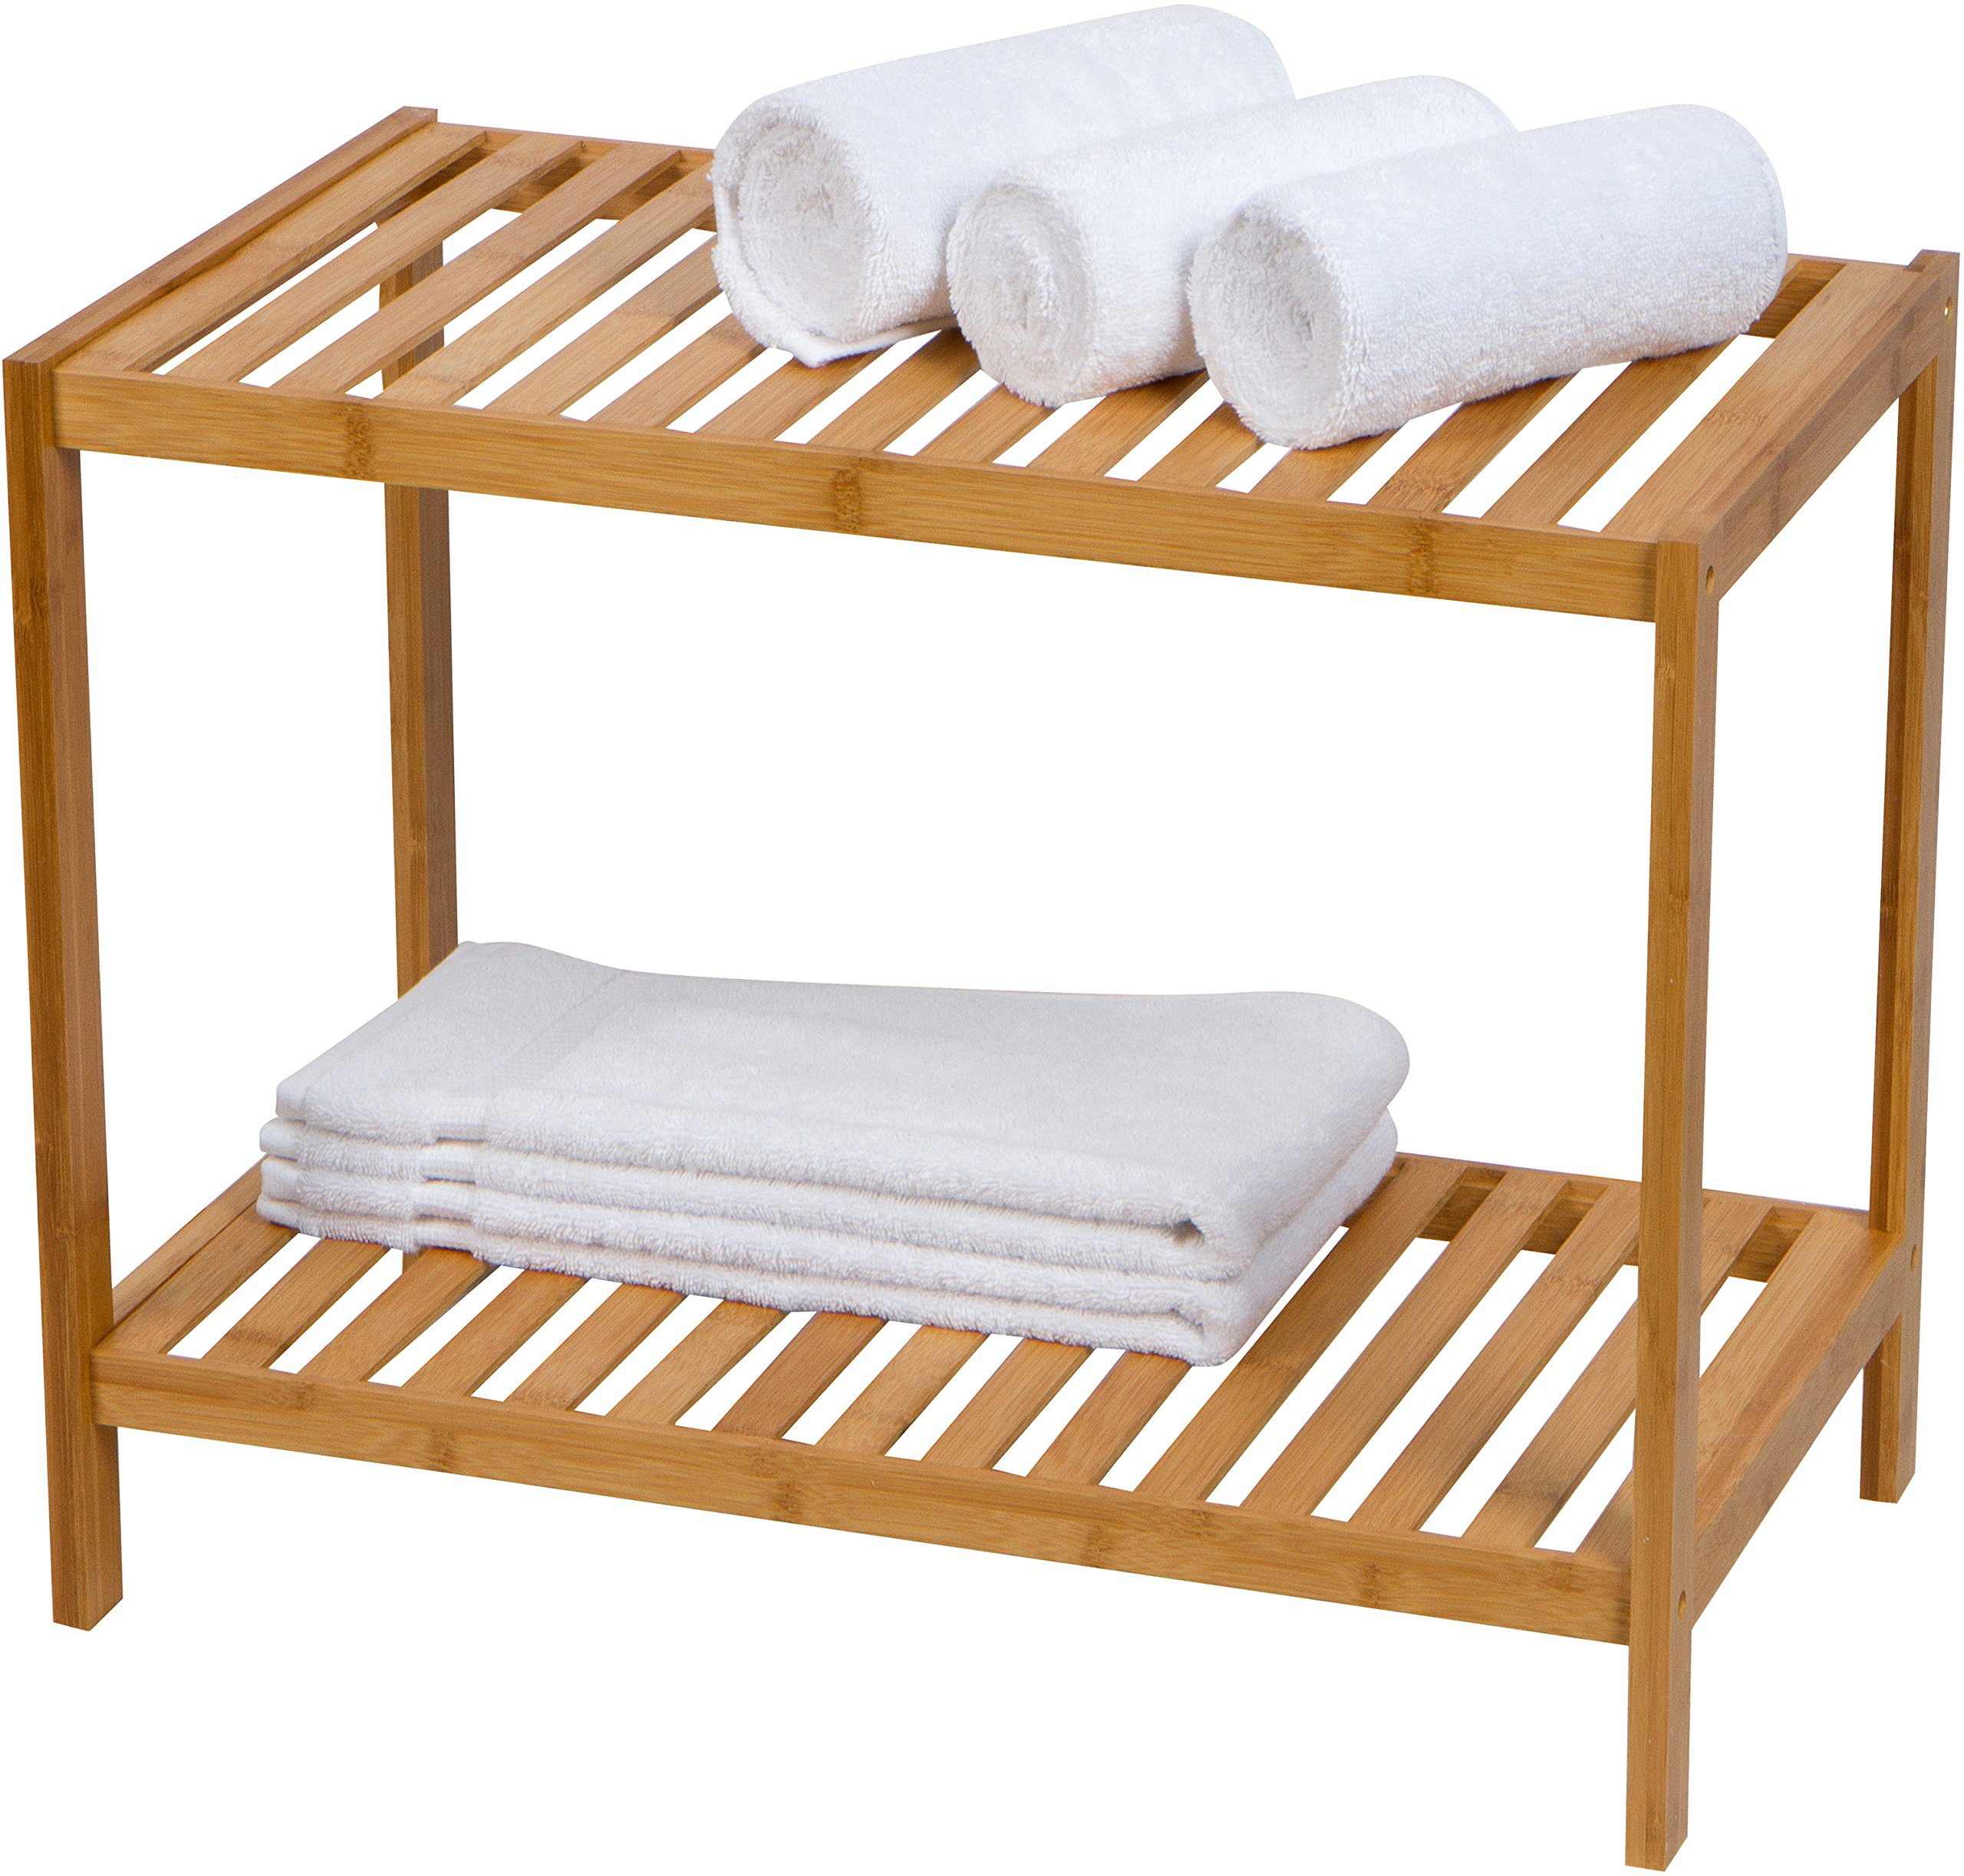 Trademark Innovations 14 Inch Bamboo Wood Stool and Bench For Shower and Bathroom